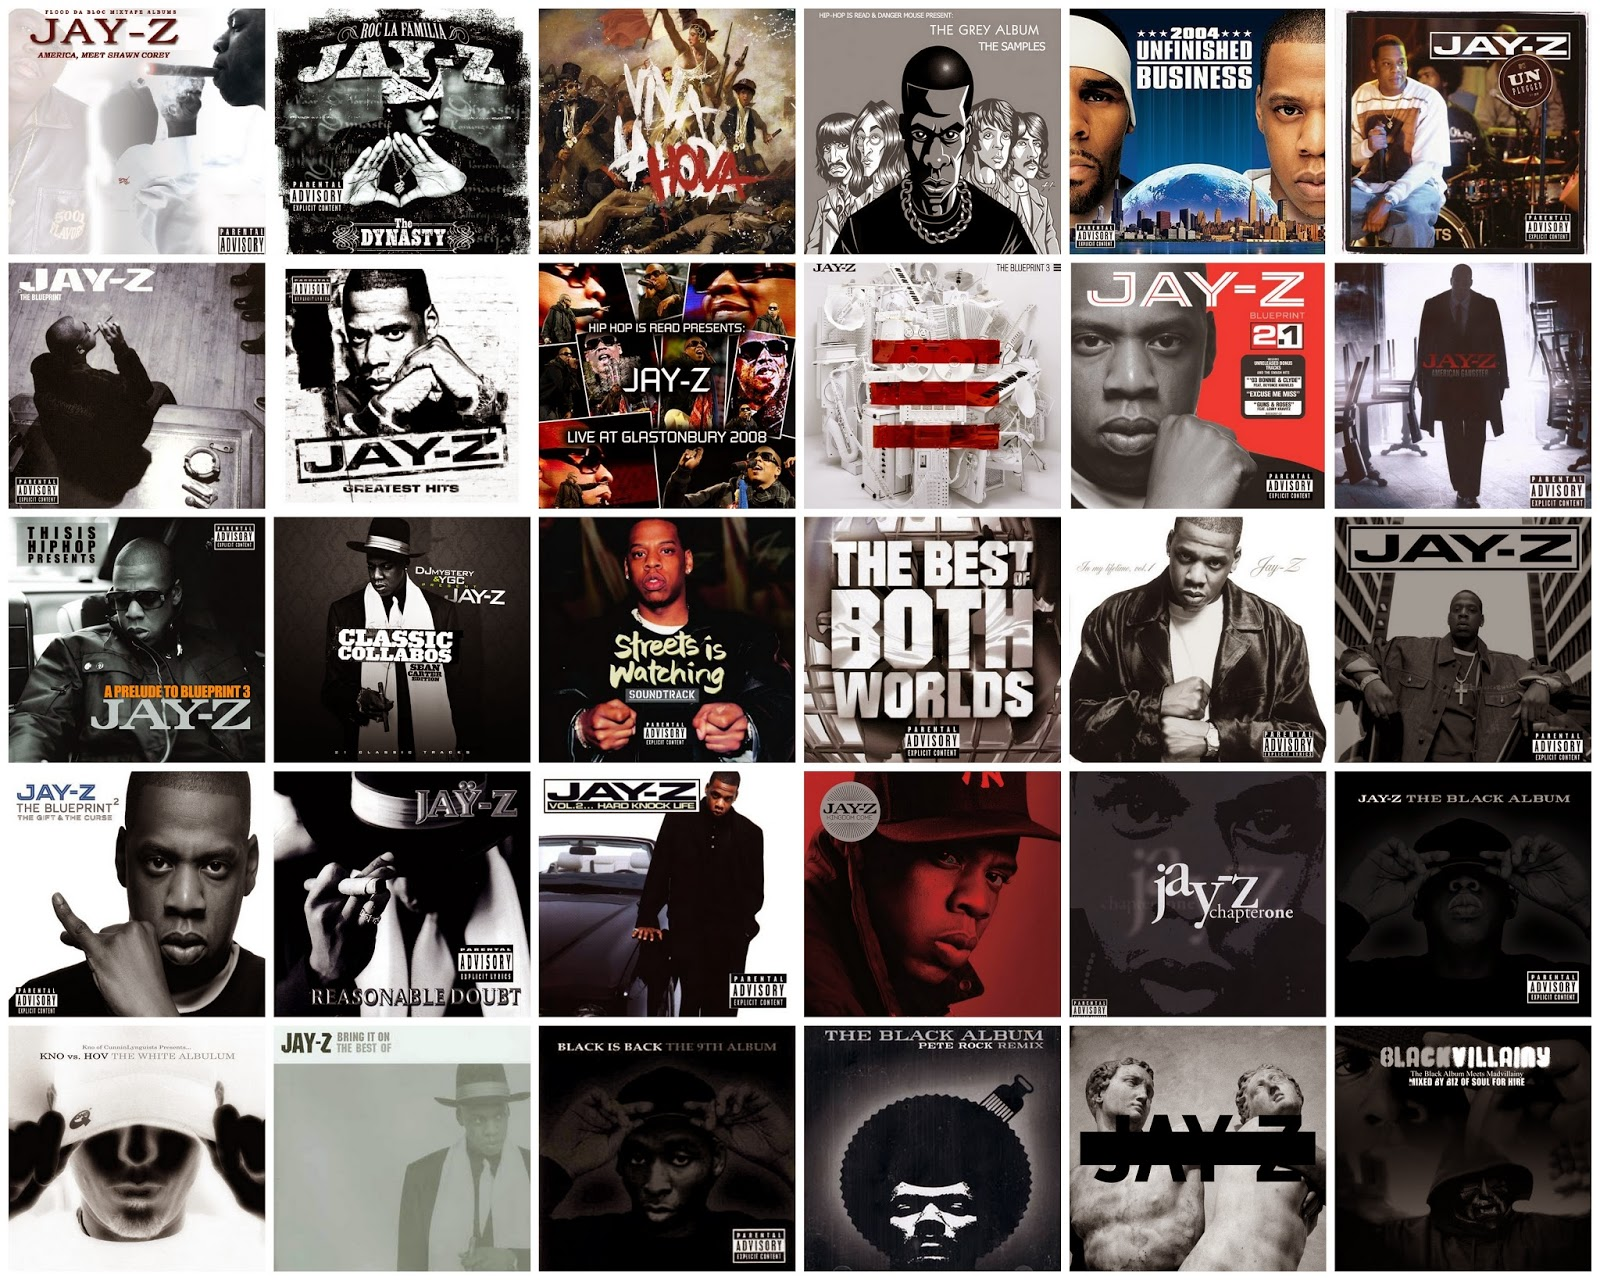 Jay z discografa mediafire 1996 2013 producto ilcito jay z discografa mediafire 1996 2013 malvernweather Image collections